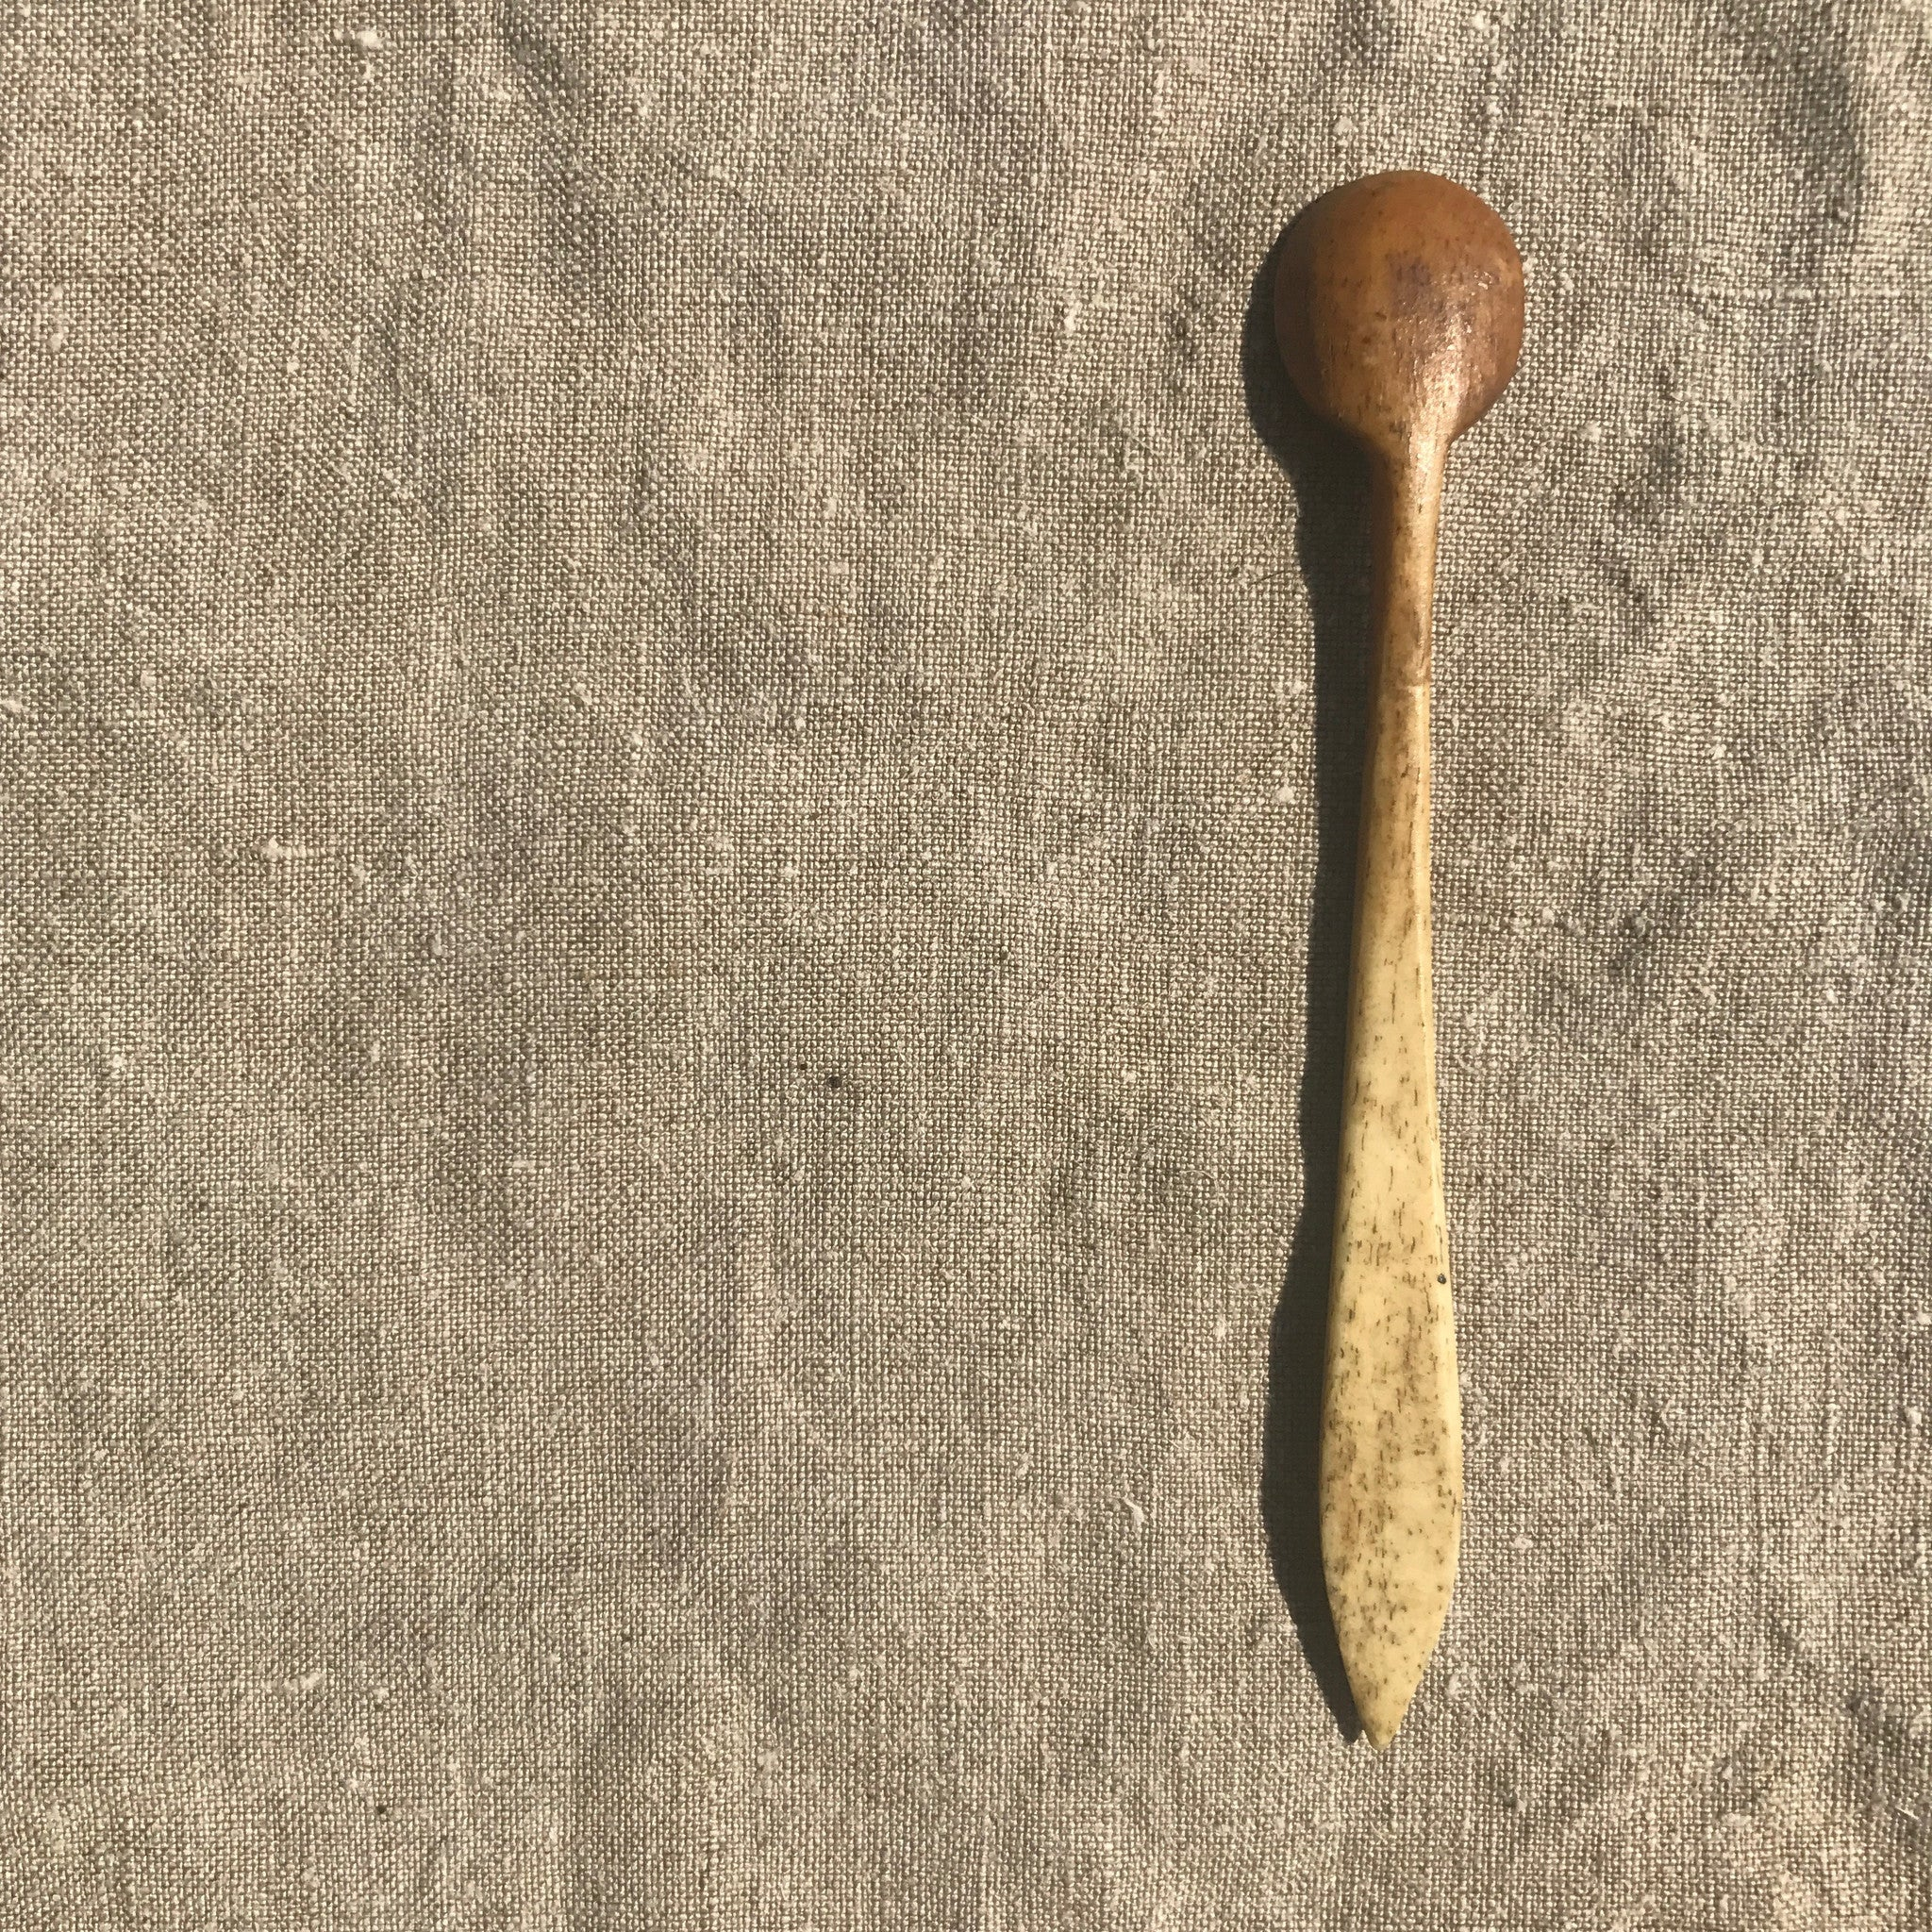 bone mustard scoop (1 of 5)